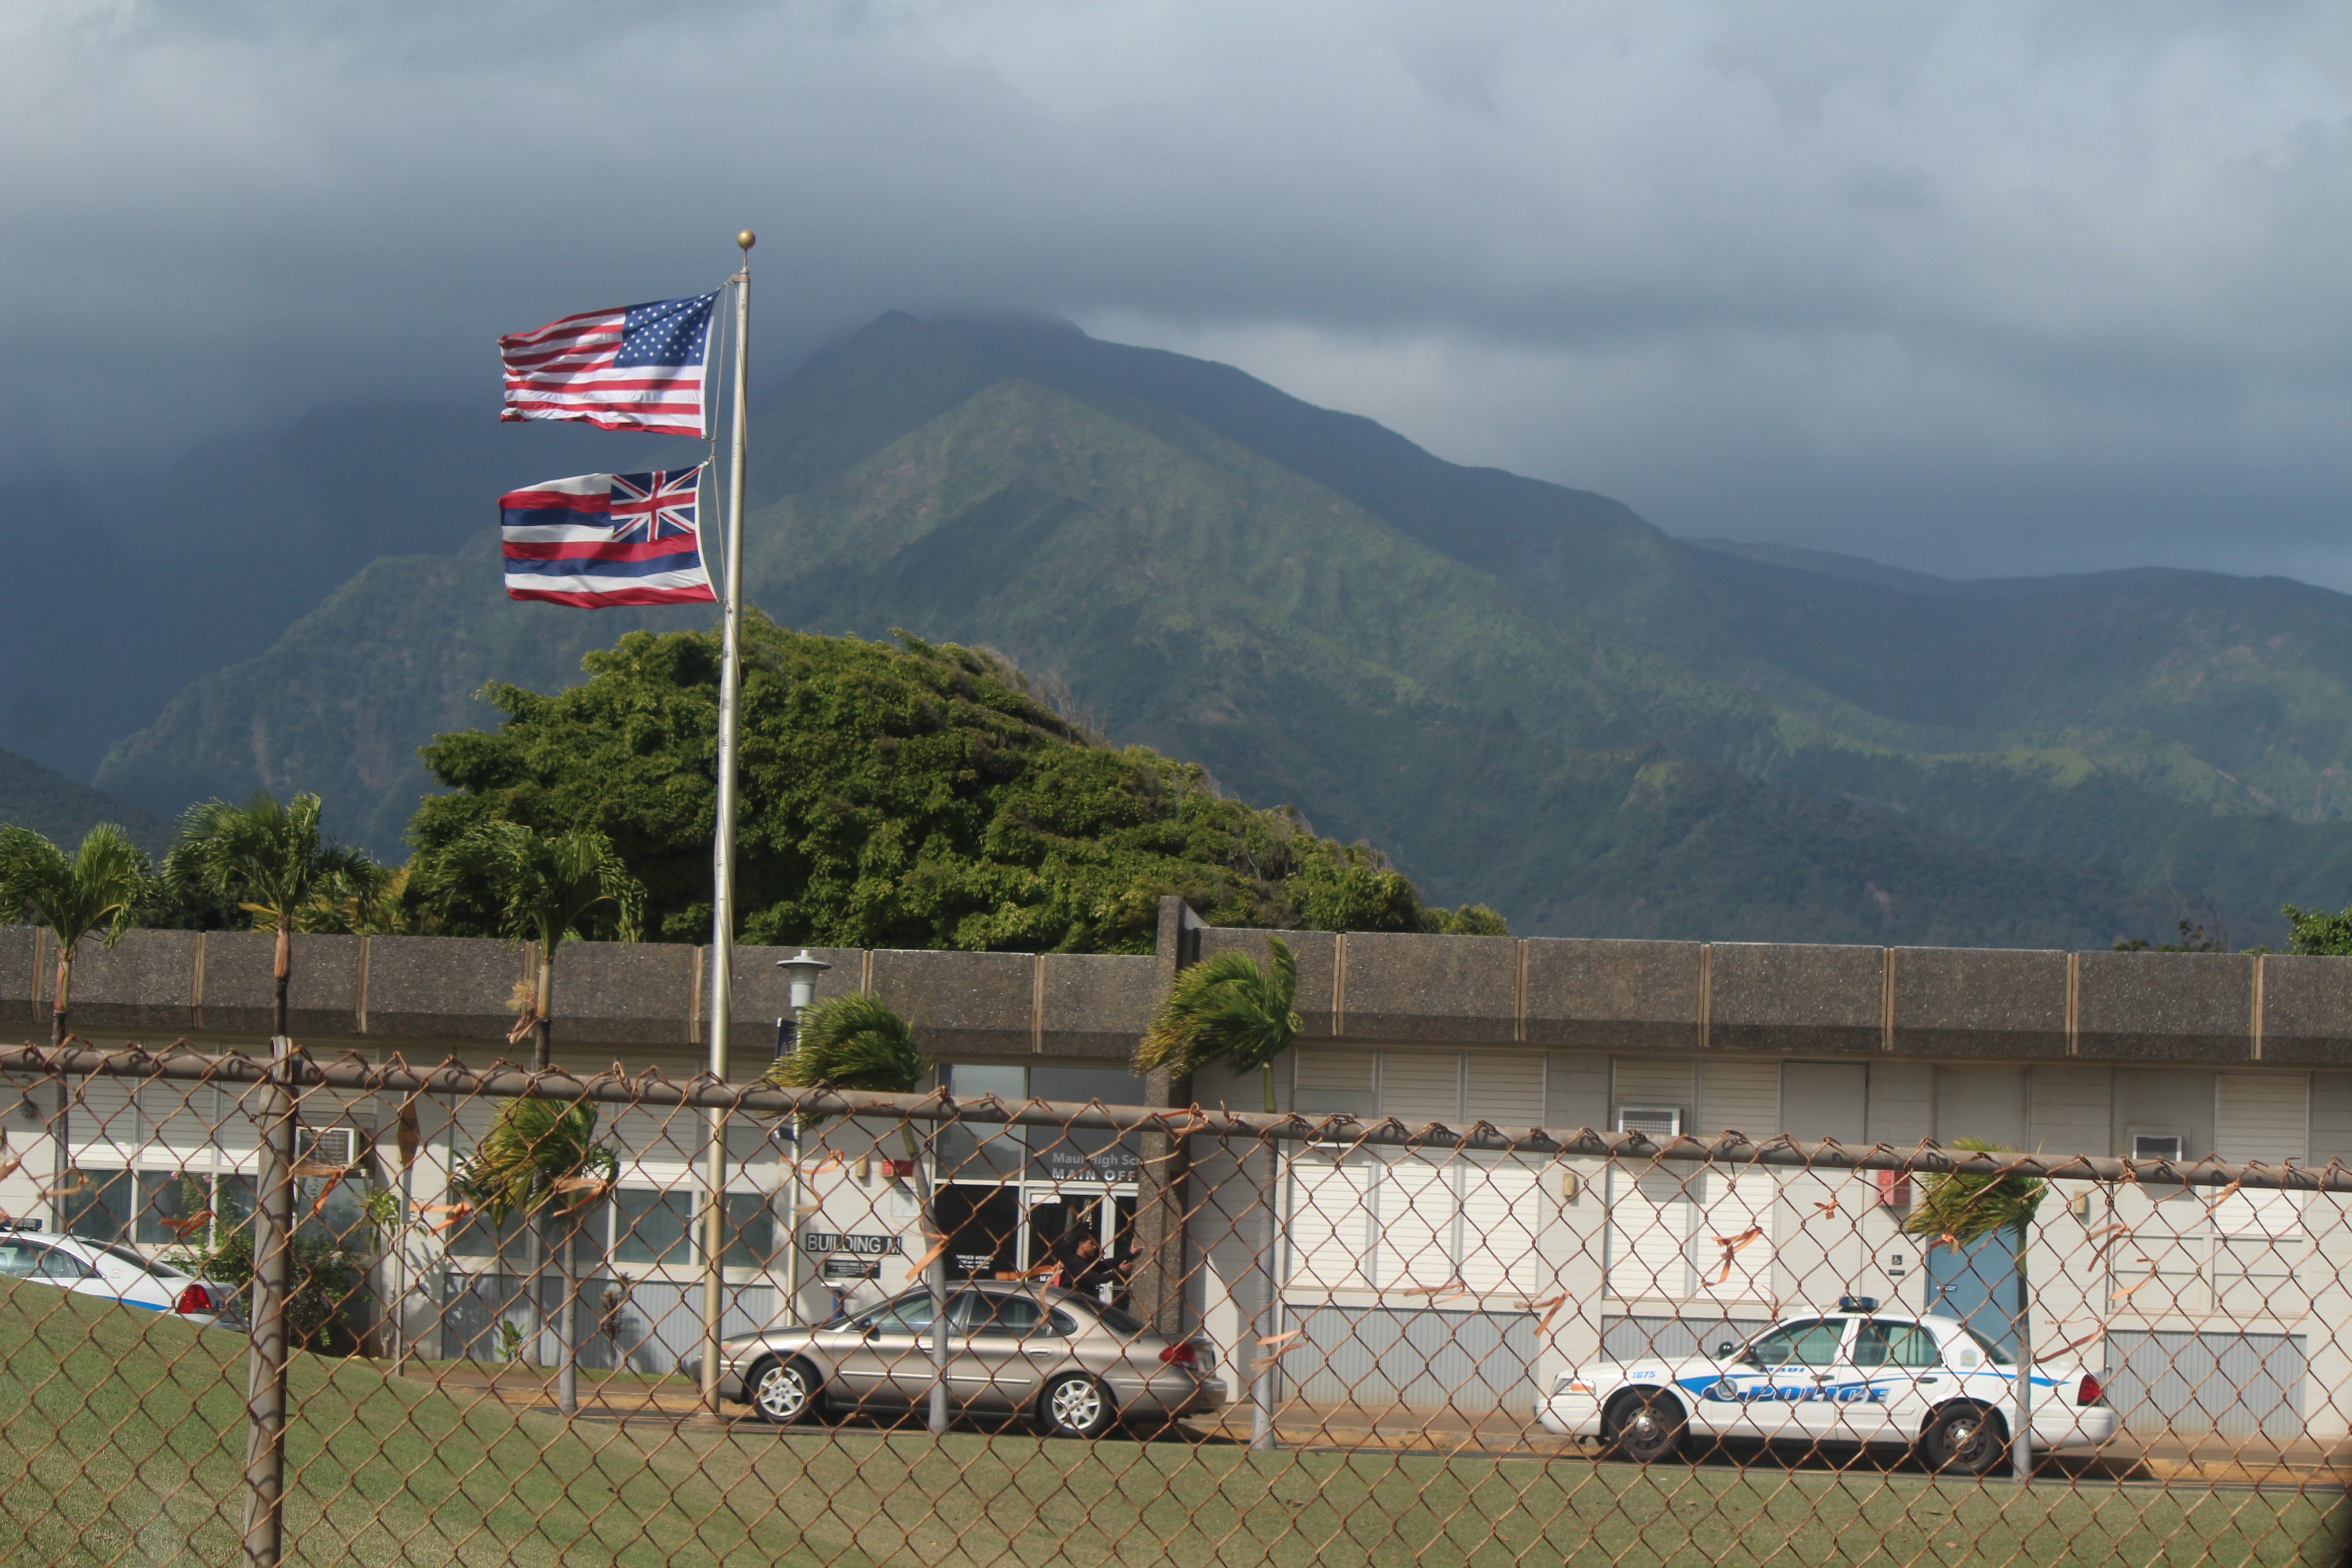 Increased Police Presence at Maui HS Following Report of Alleged Fight